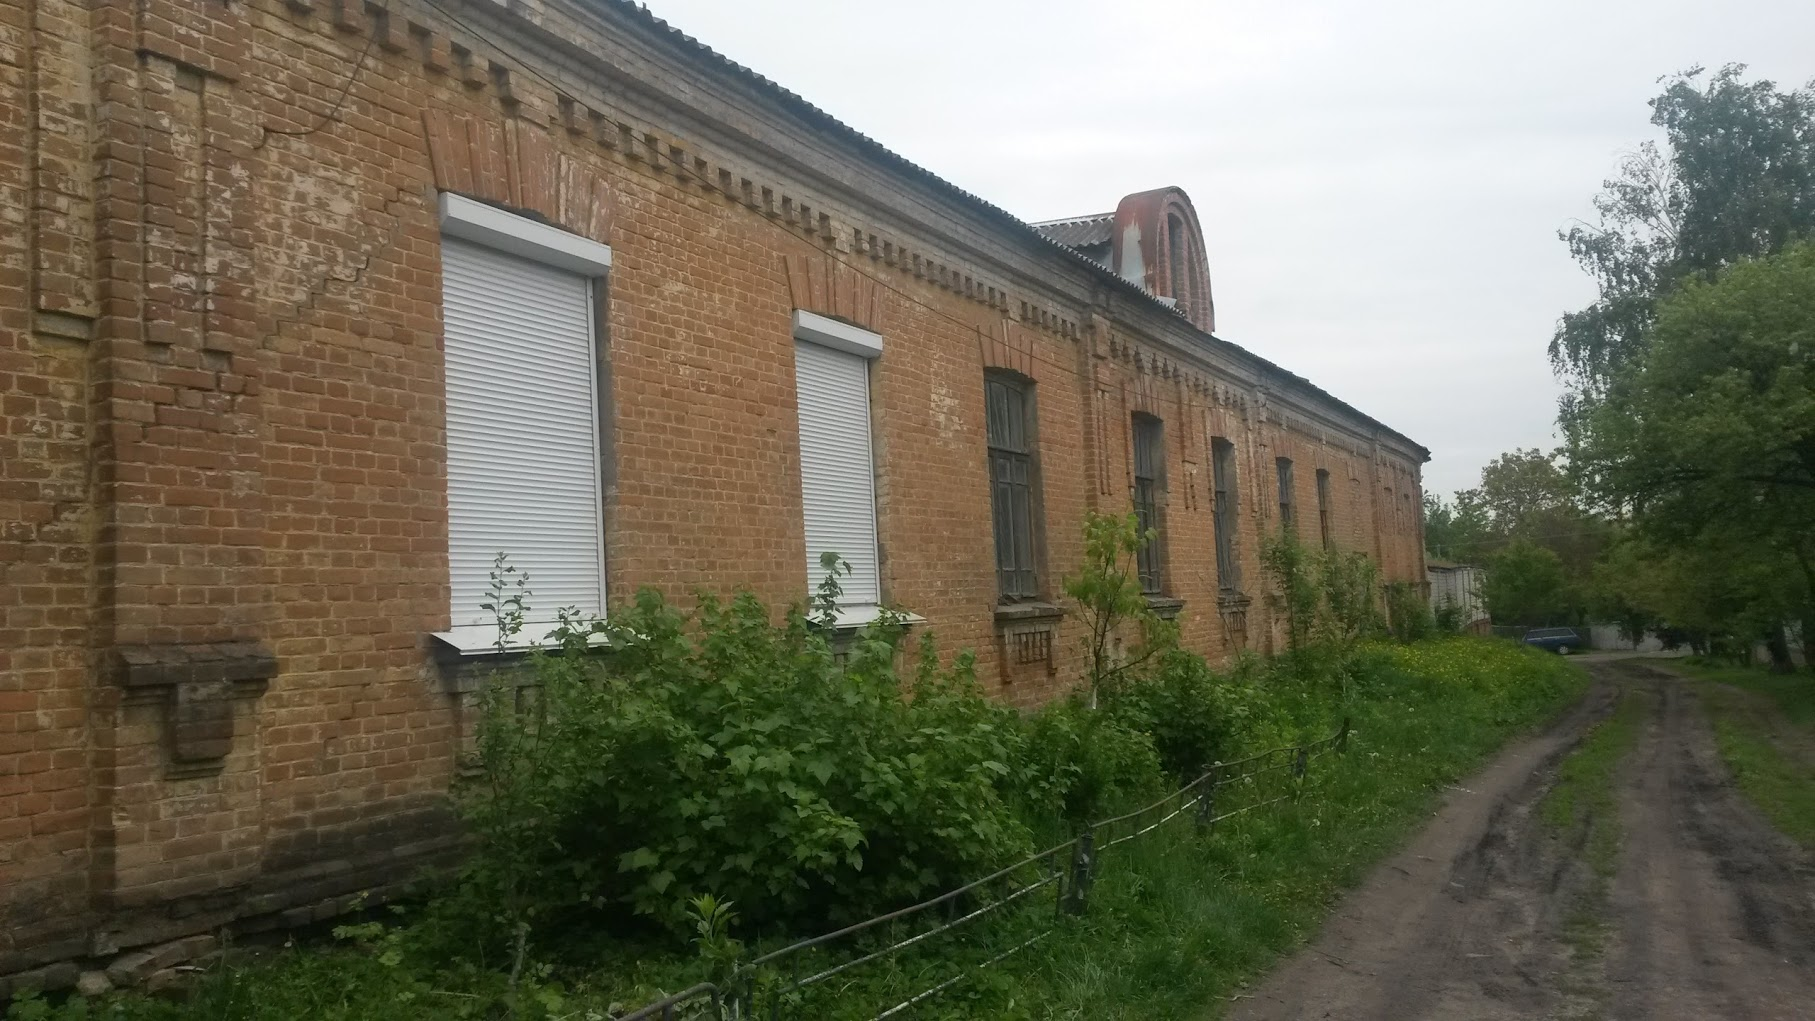 Synagogue of Schneerson, 2017. Now it belongs to local police station.